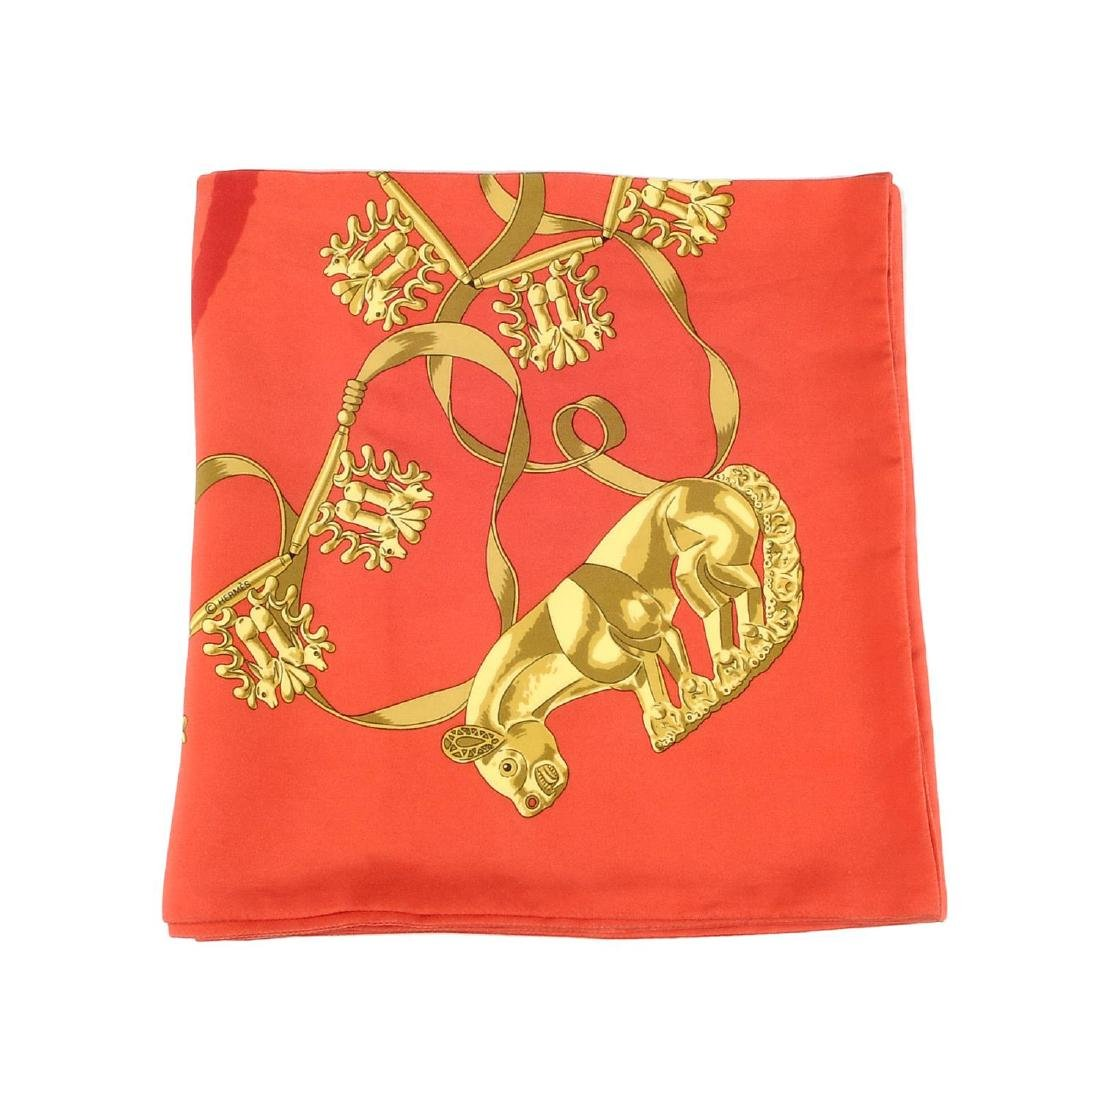 HERMÈS - a long 'Les Cavaliers d'Or' Maxi Twilly scarf.